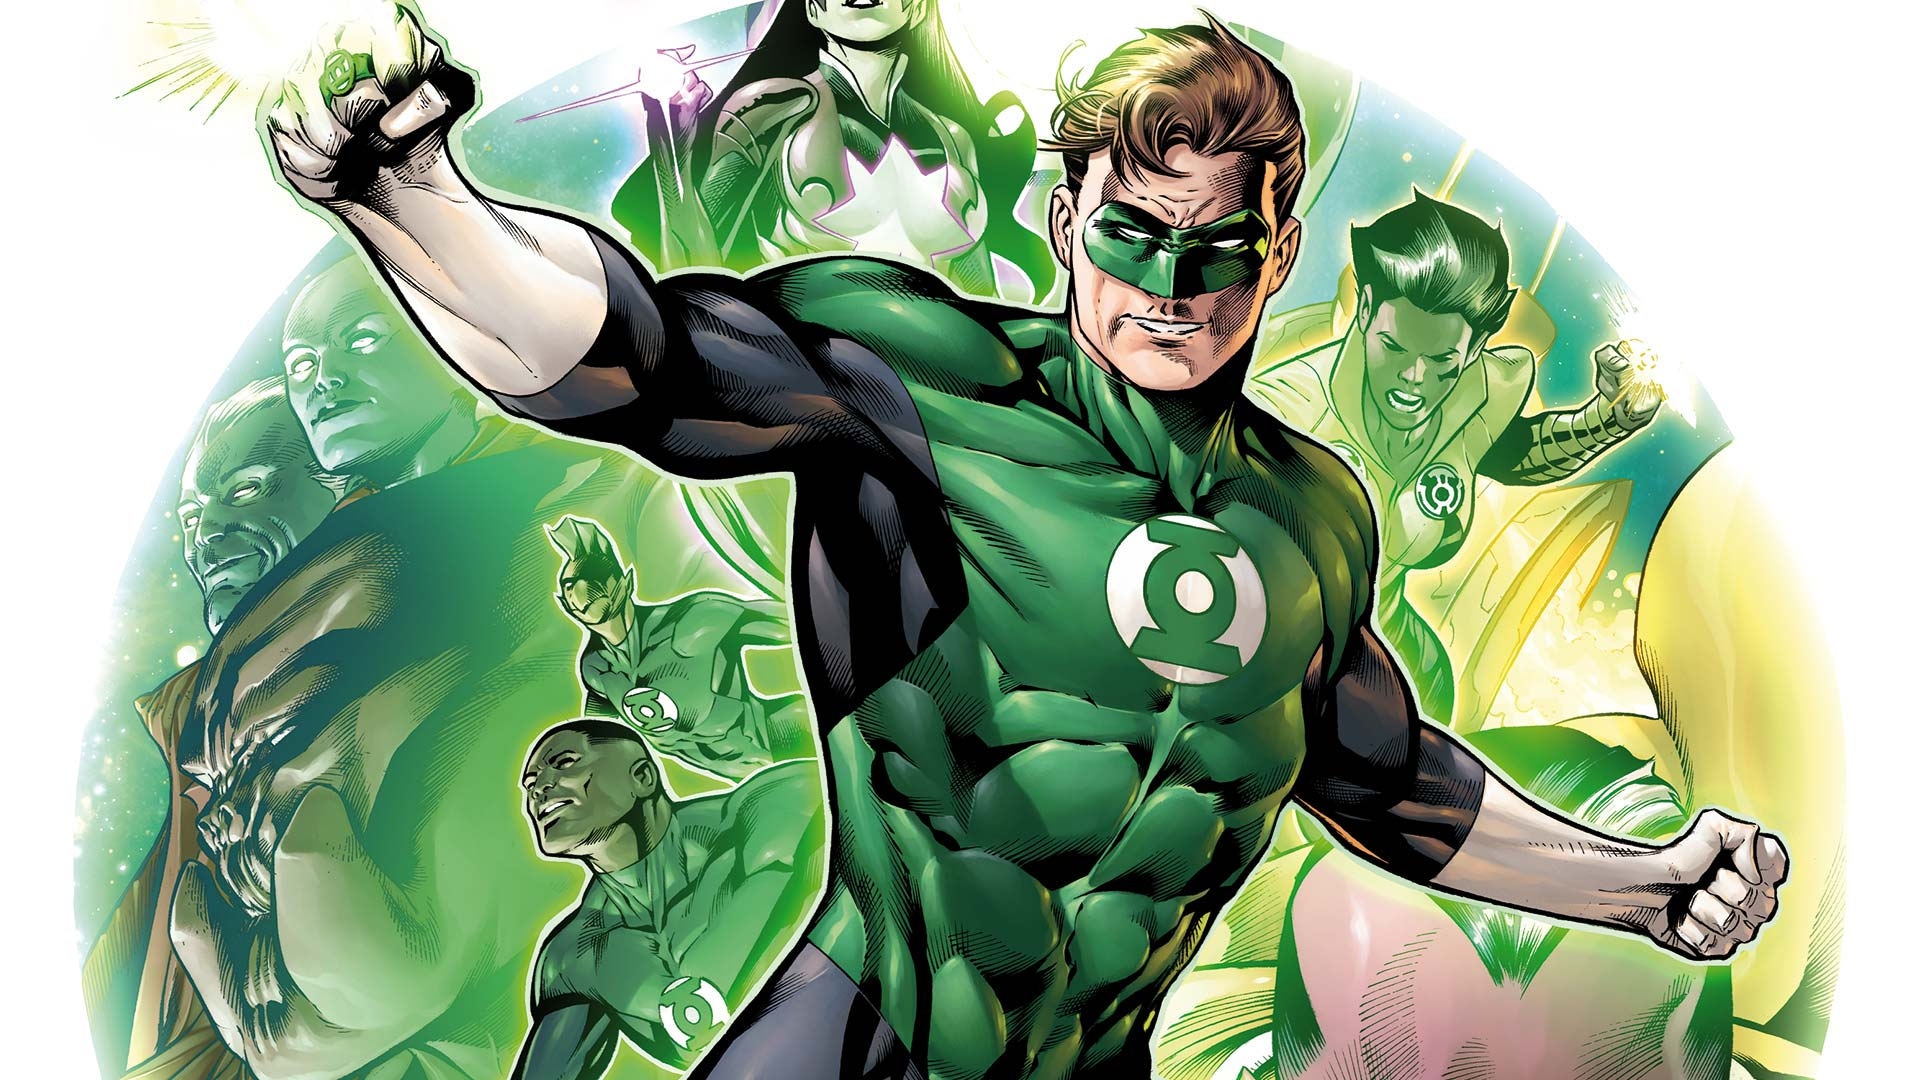 Green Lantern Corps wants Mission: Impossible 6 director